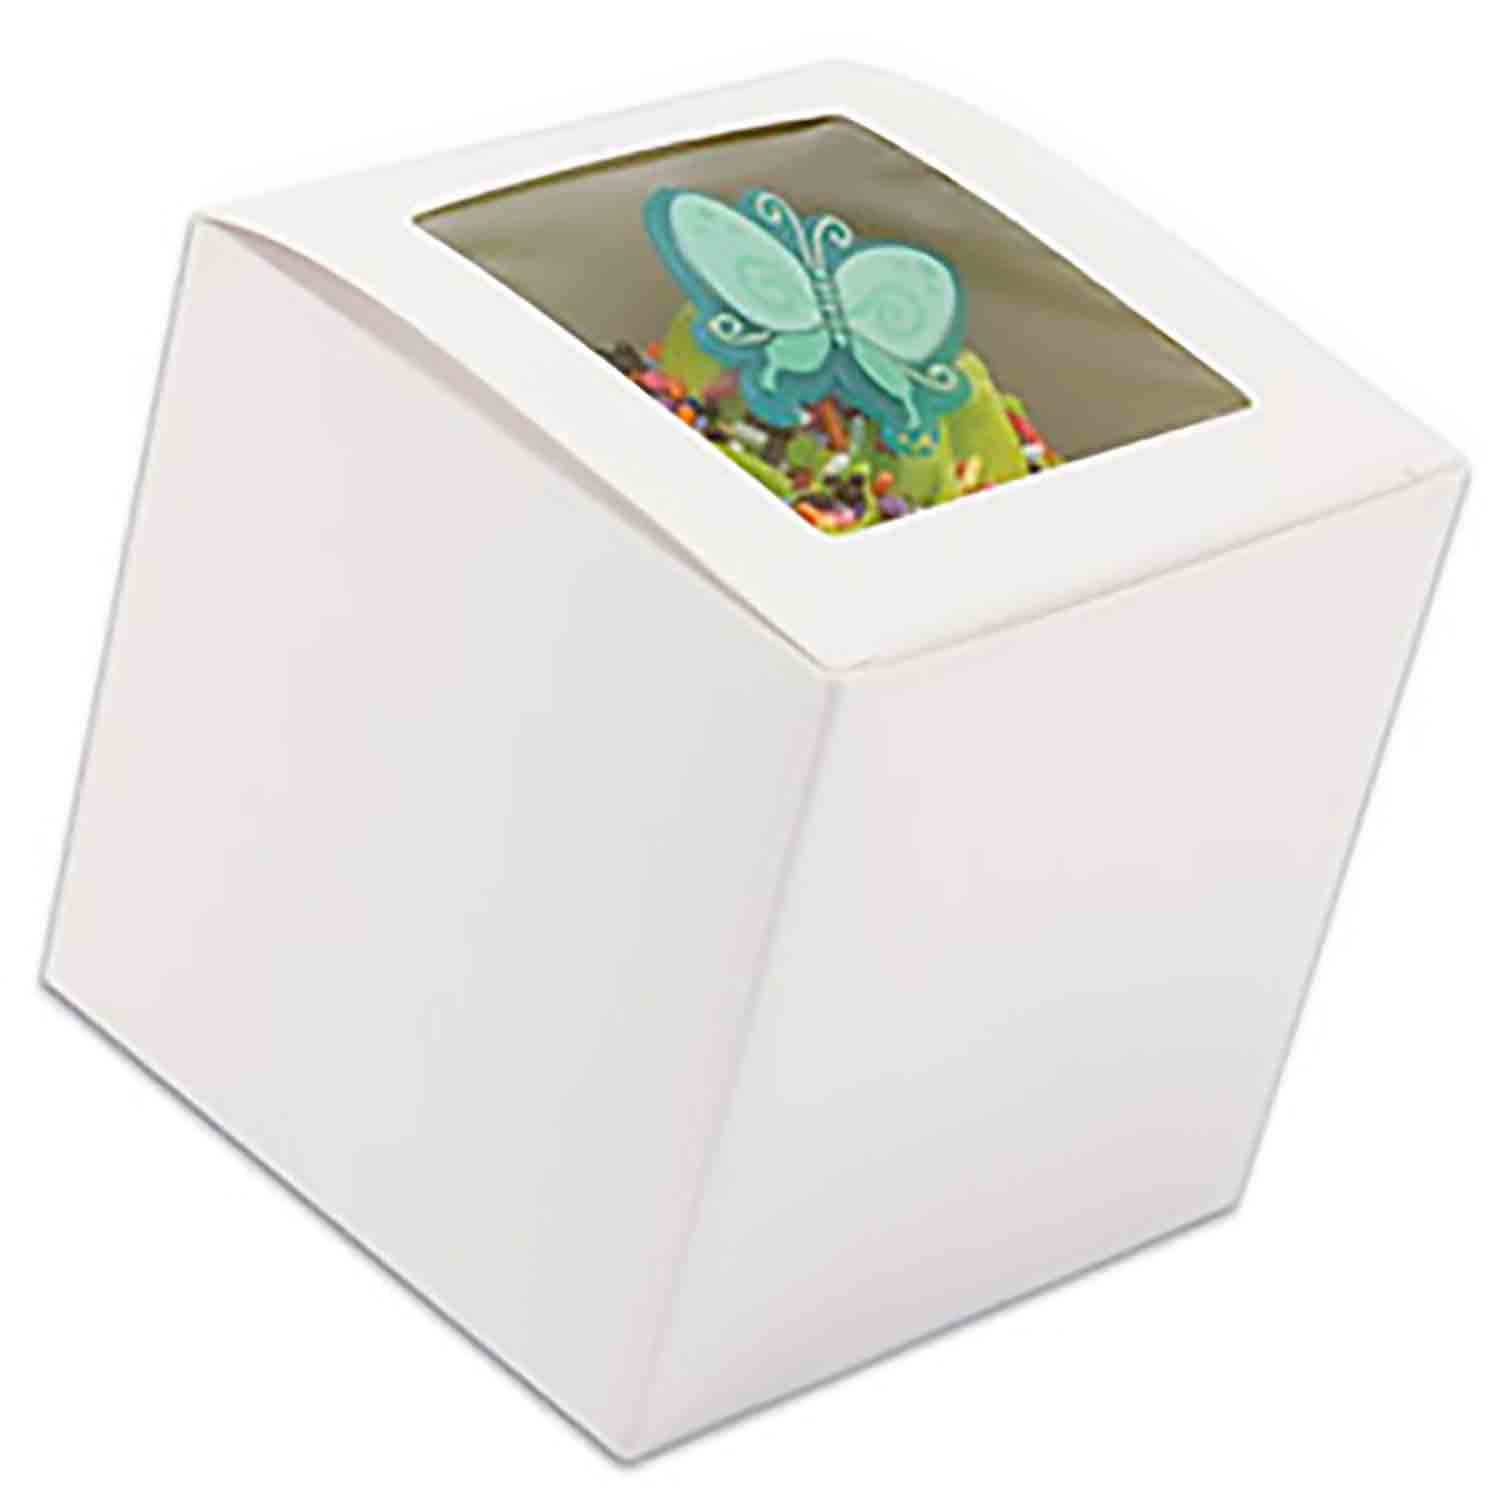 White 1 Ct. Cupcake Box with Window